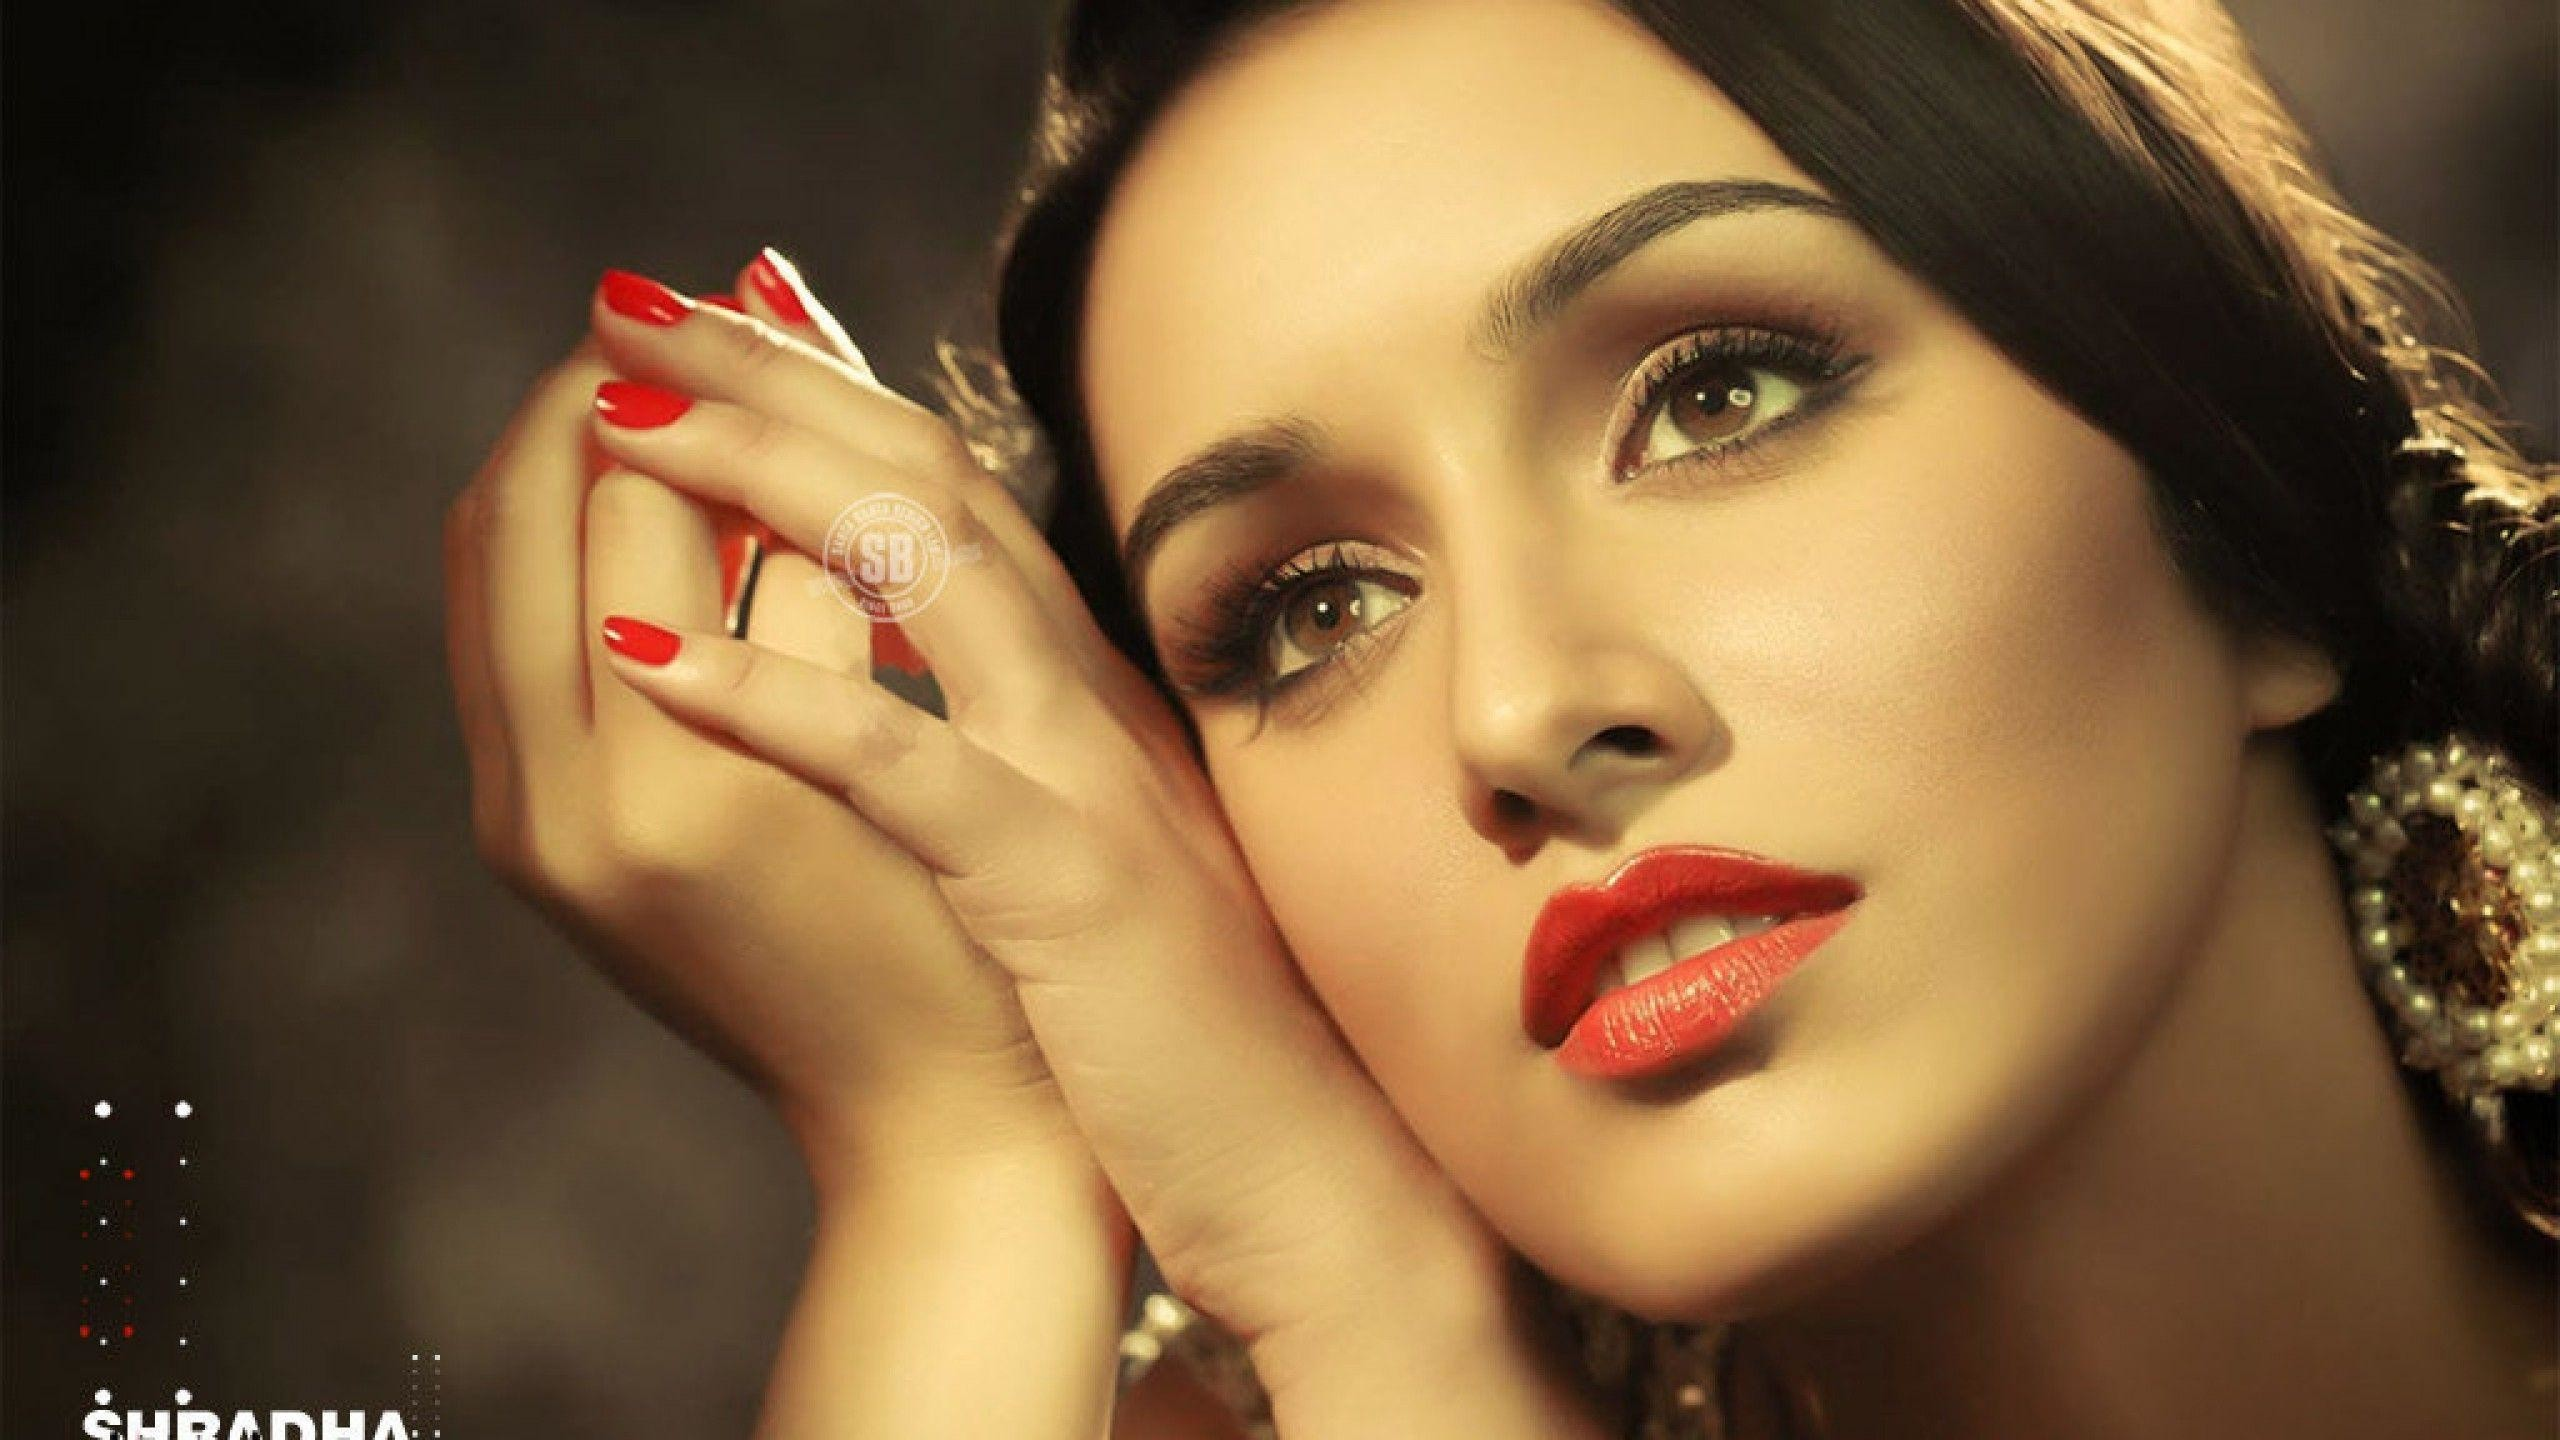 2560x1440 bollywood actress shraddha kapoor hd wallpapers Archives - www .